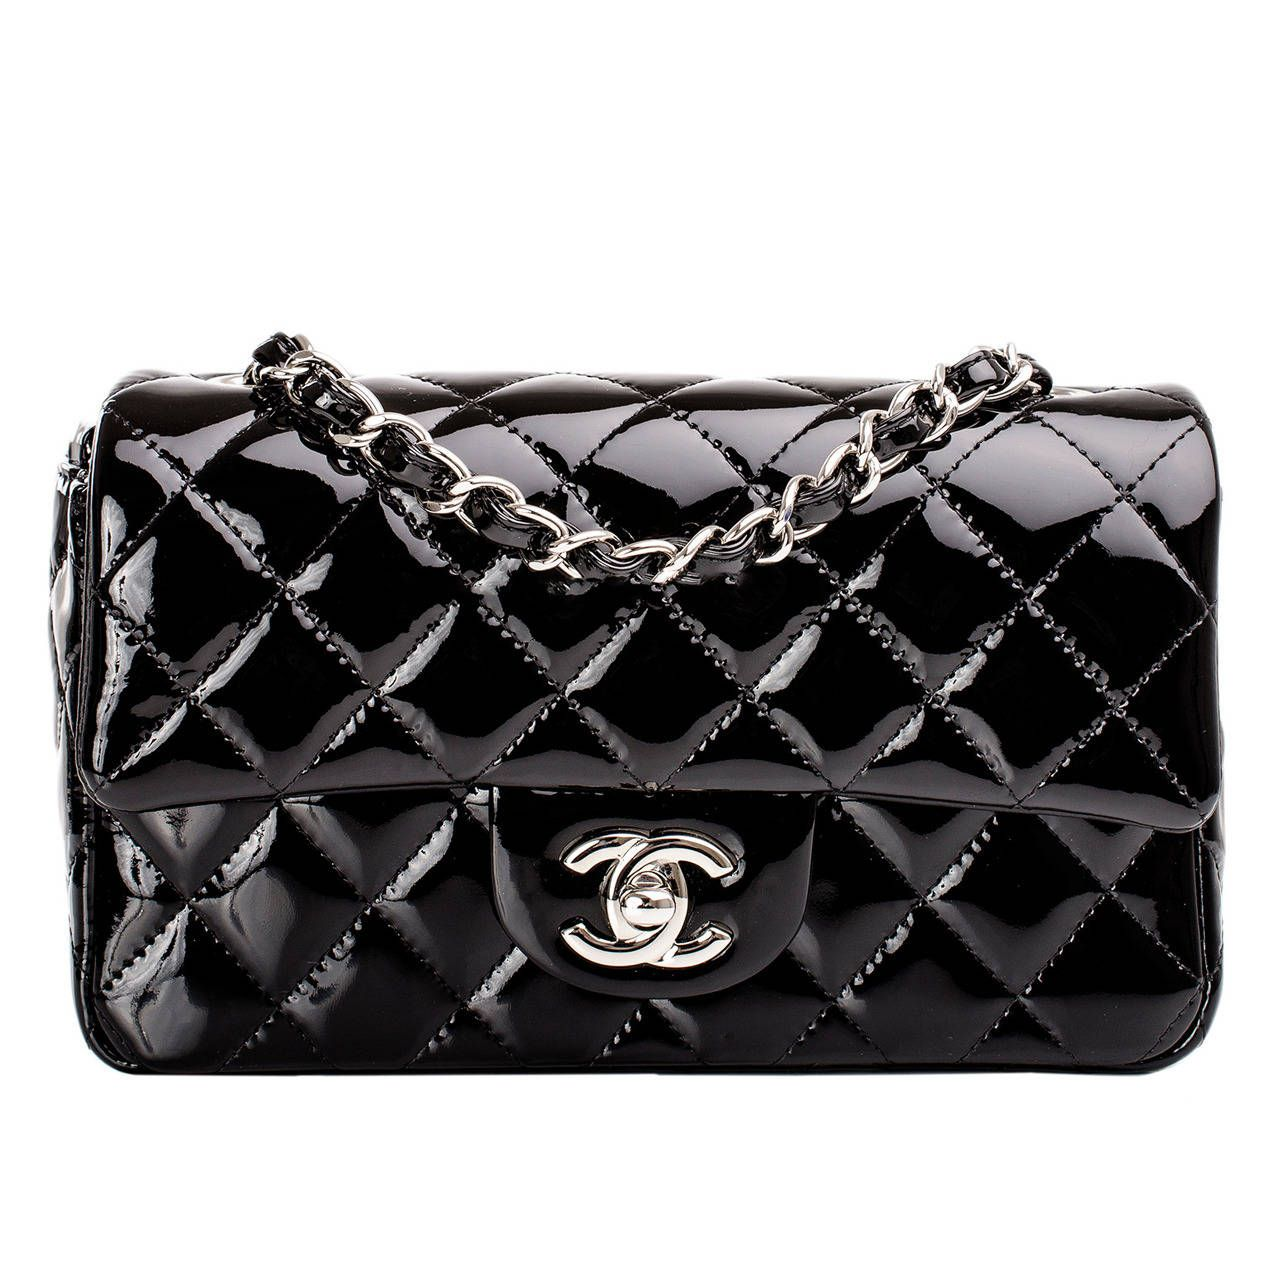 5244ed01b1e7 Chanel Black Quilted Patent Small Classic Flap Bag | Bags | Chanel ...